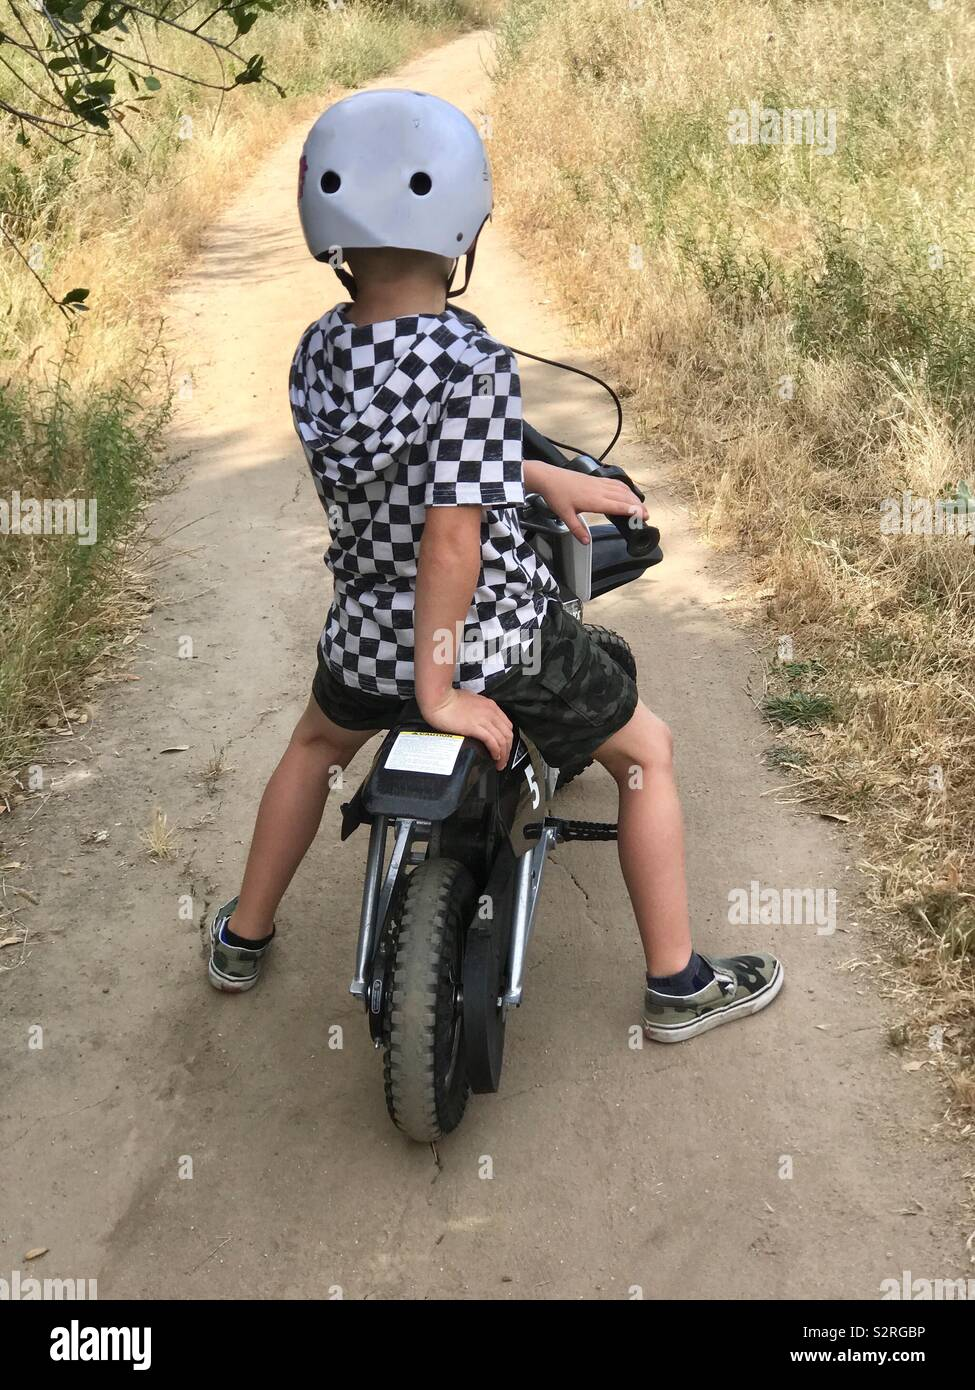 A young boy riding his dirt bike in the woods on a dirt pathway in the summer - Stock Image